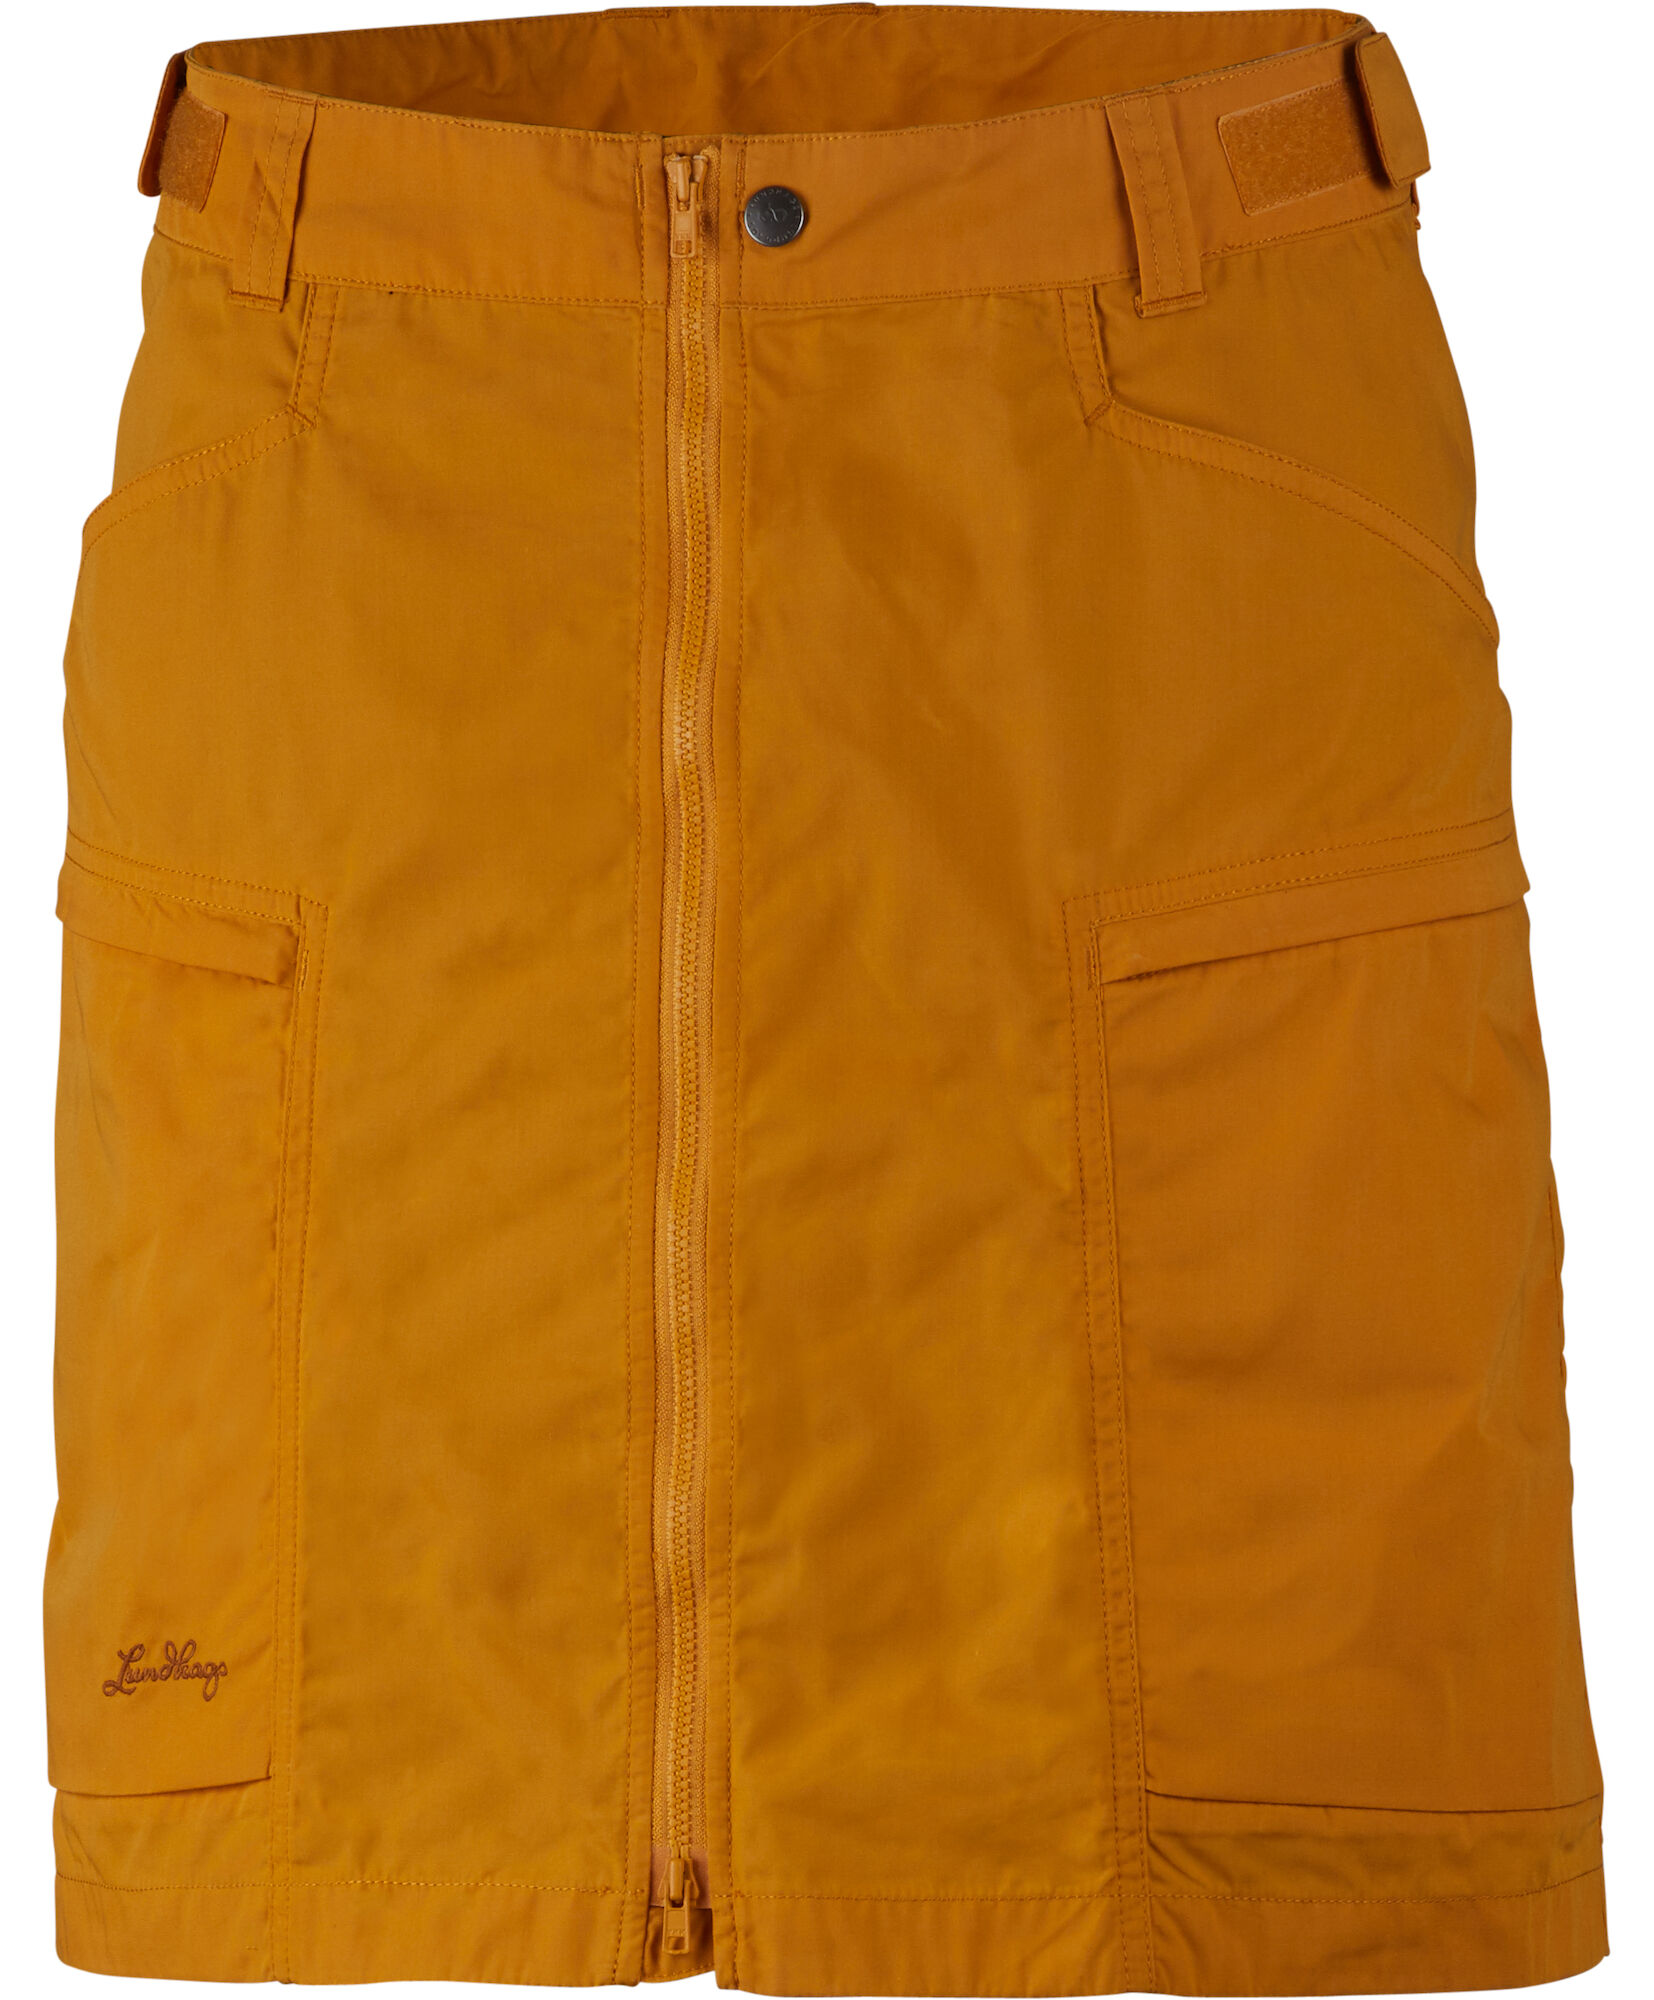 Tiven II Ws Skirt | Lundhags